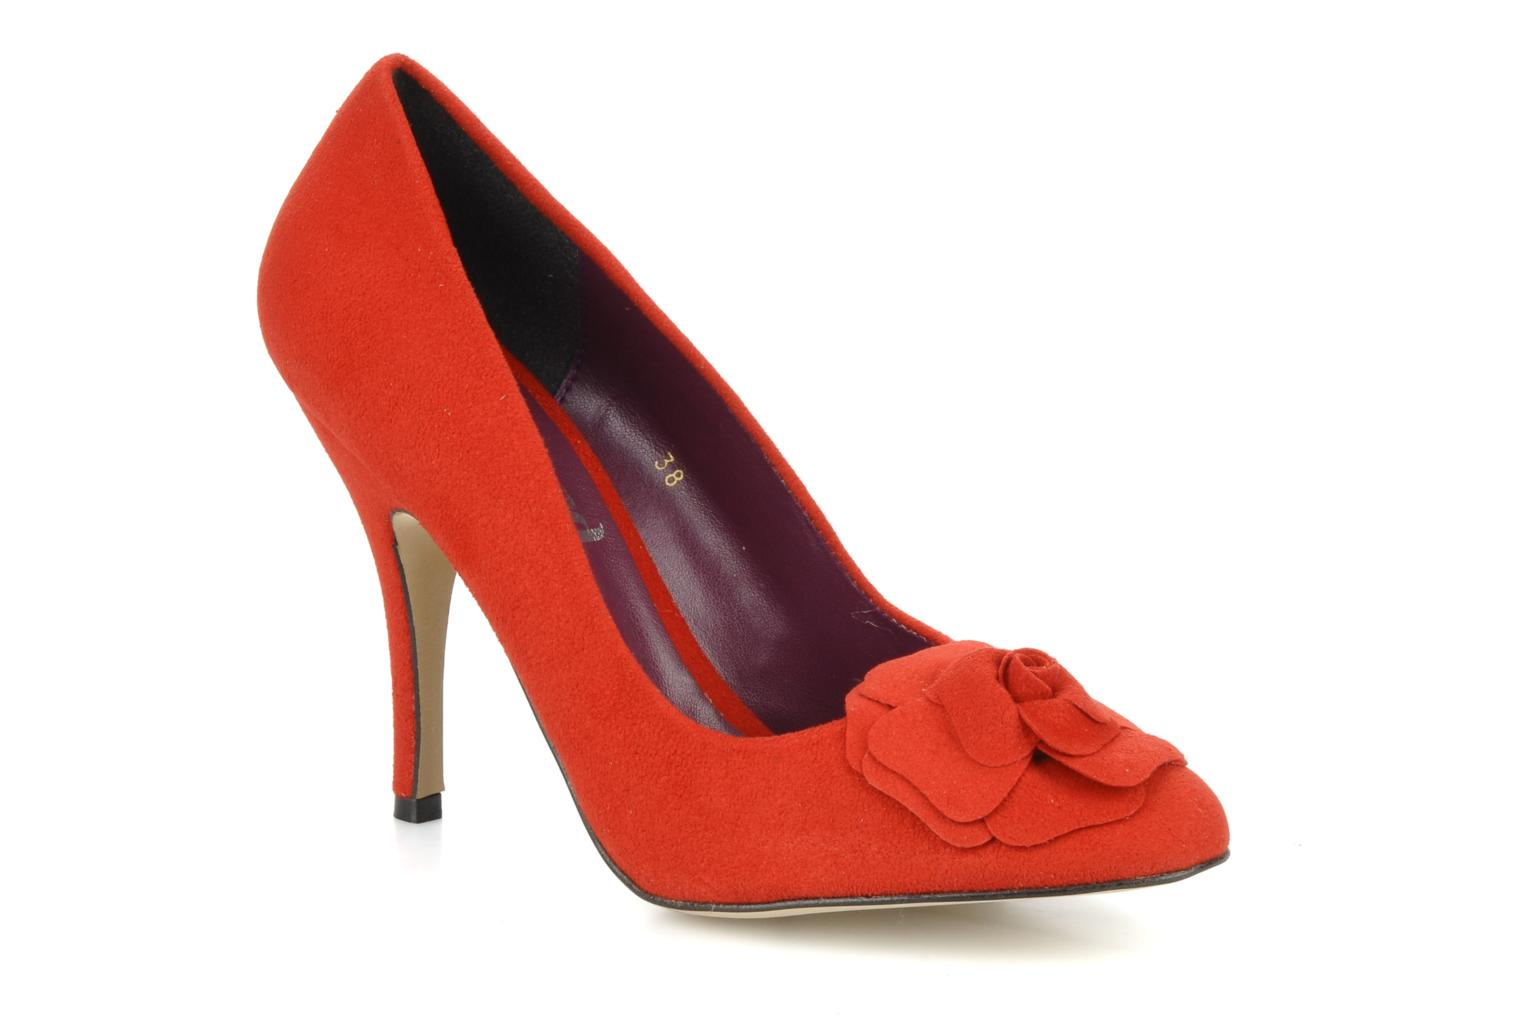 SWEETIE Red faux suede